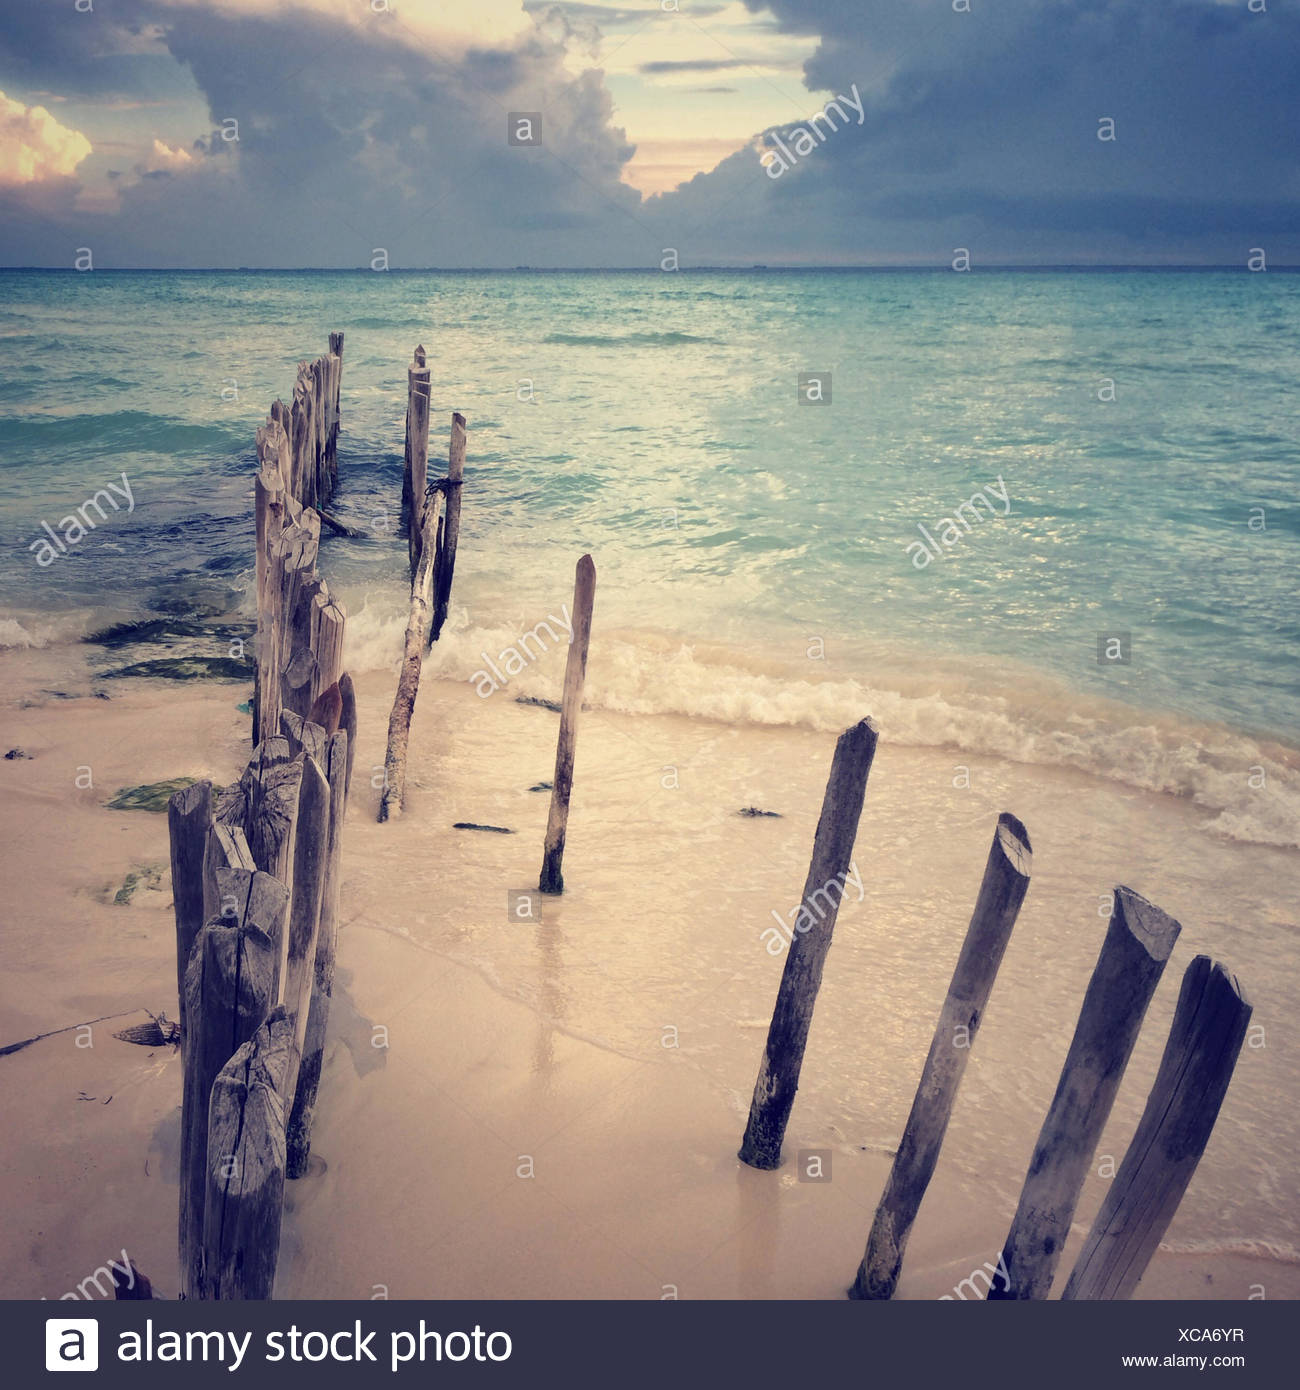 Mexico, View of wooden post on beach - Stock Image